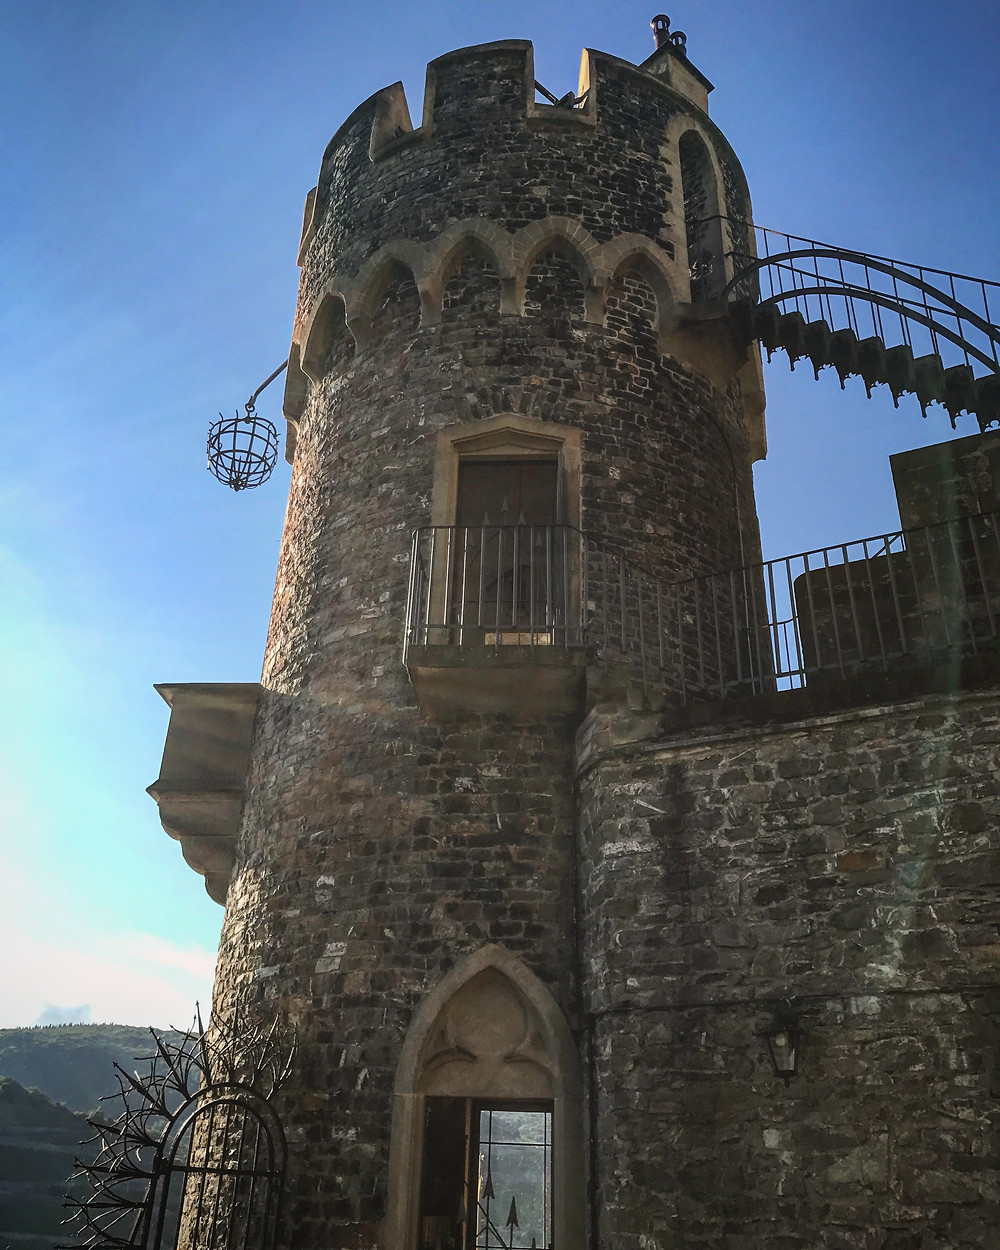 One of the castles that we had visited.